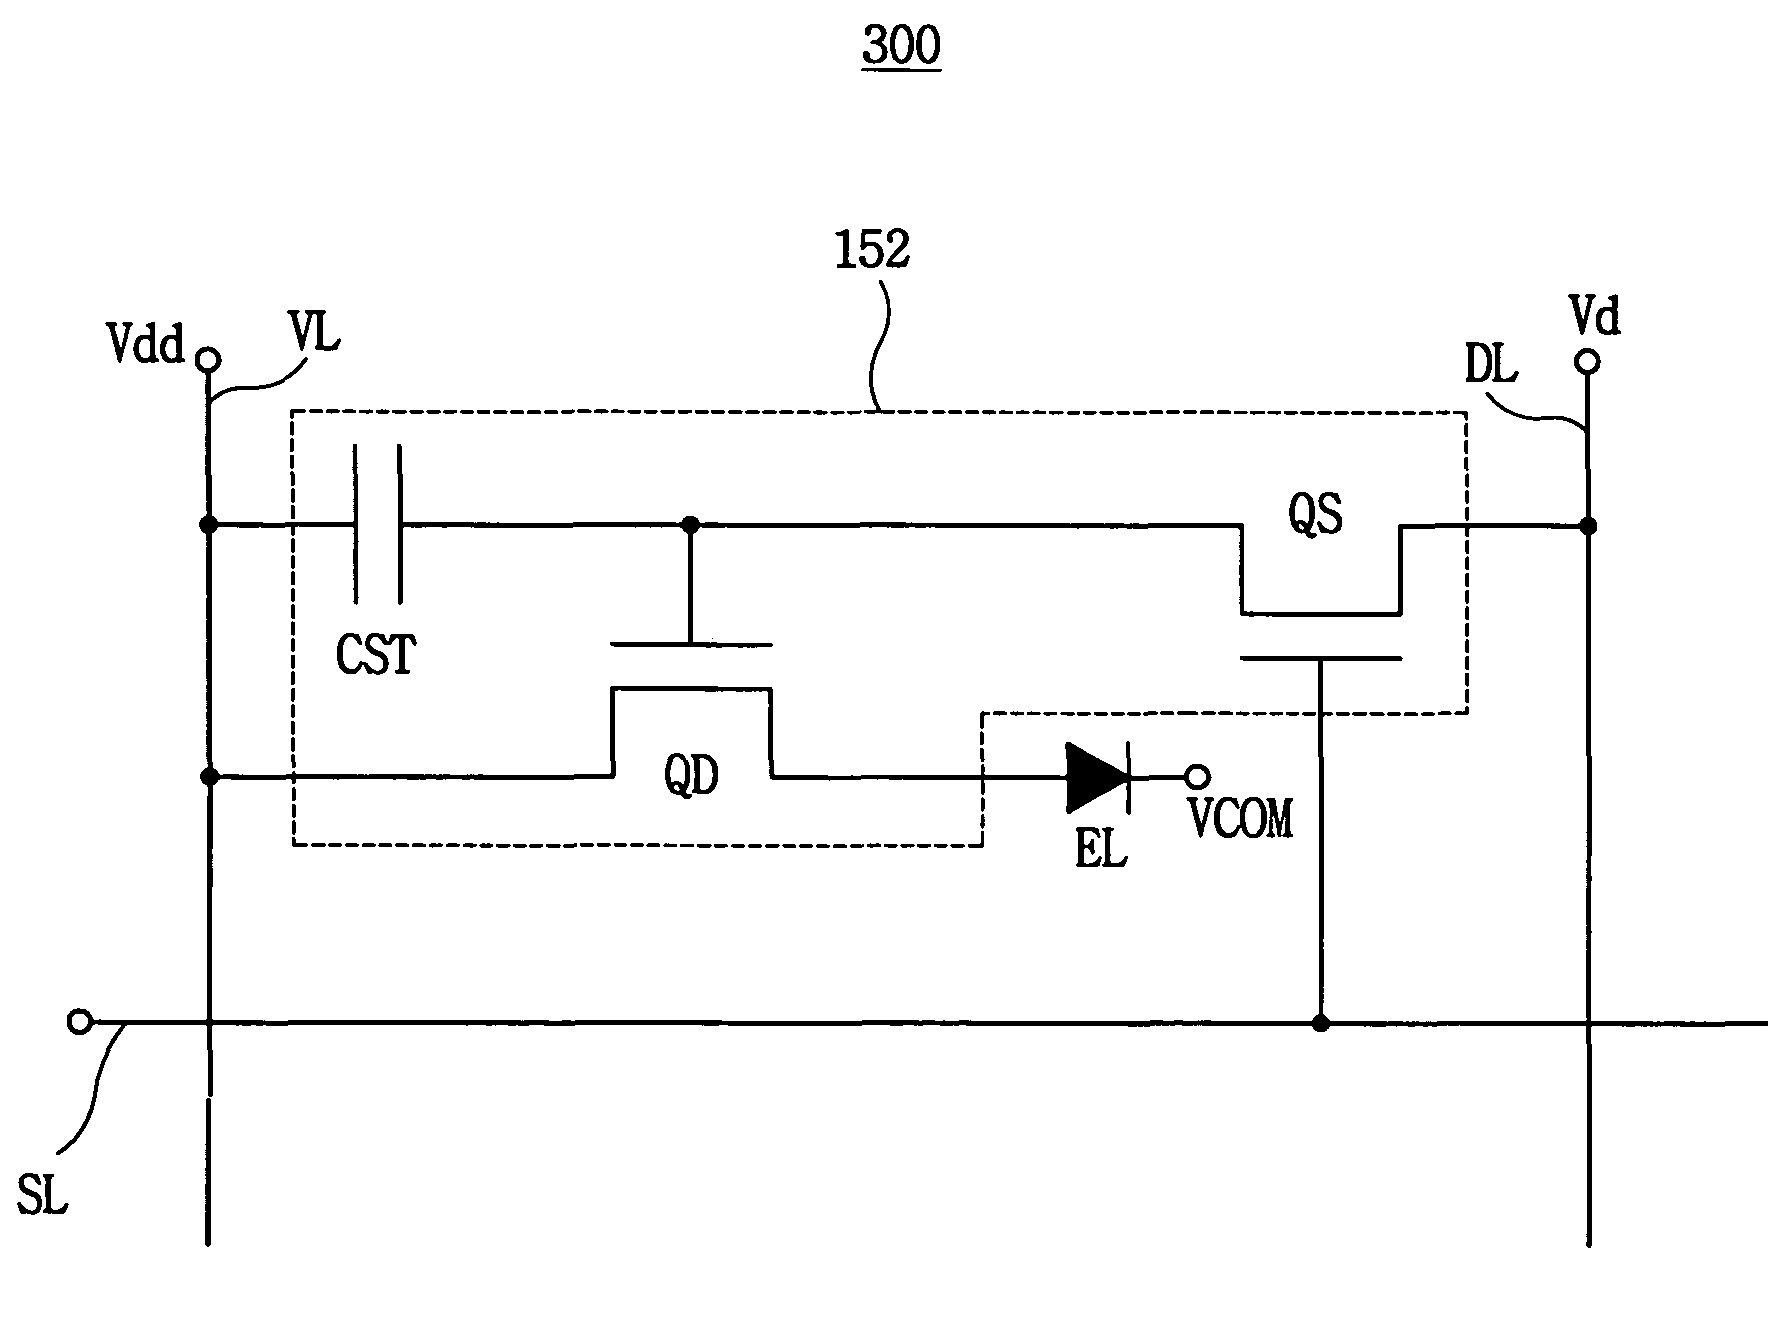 Qd Control Box Wiring Diagram Method Of Driving A Transistor A Driving Element Using the Of Qd Control Box Wiring Diagram